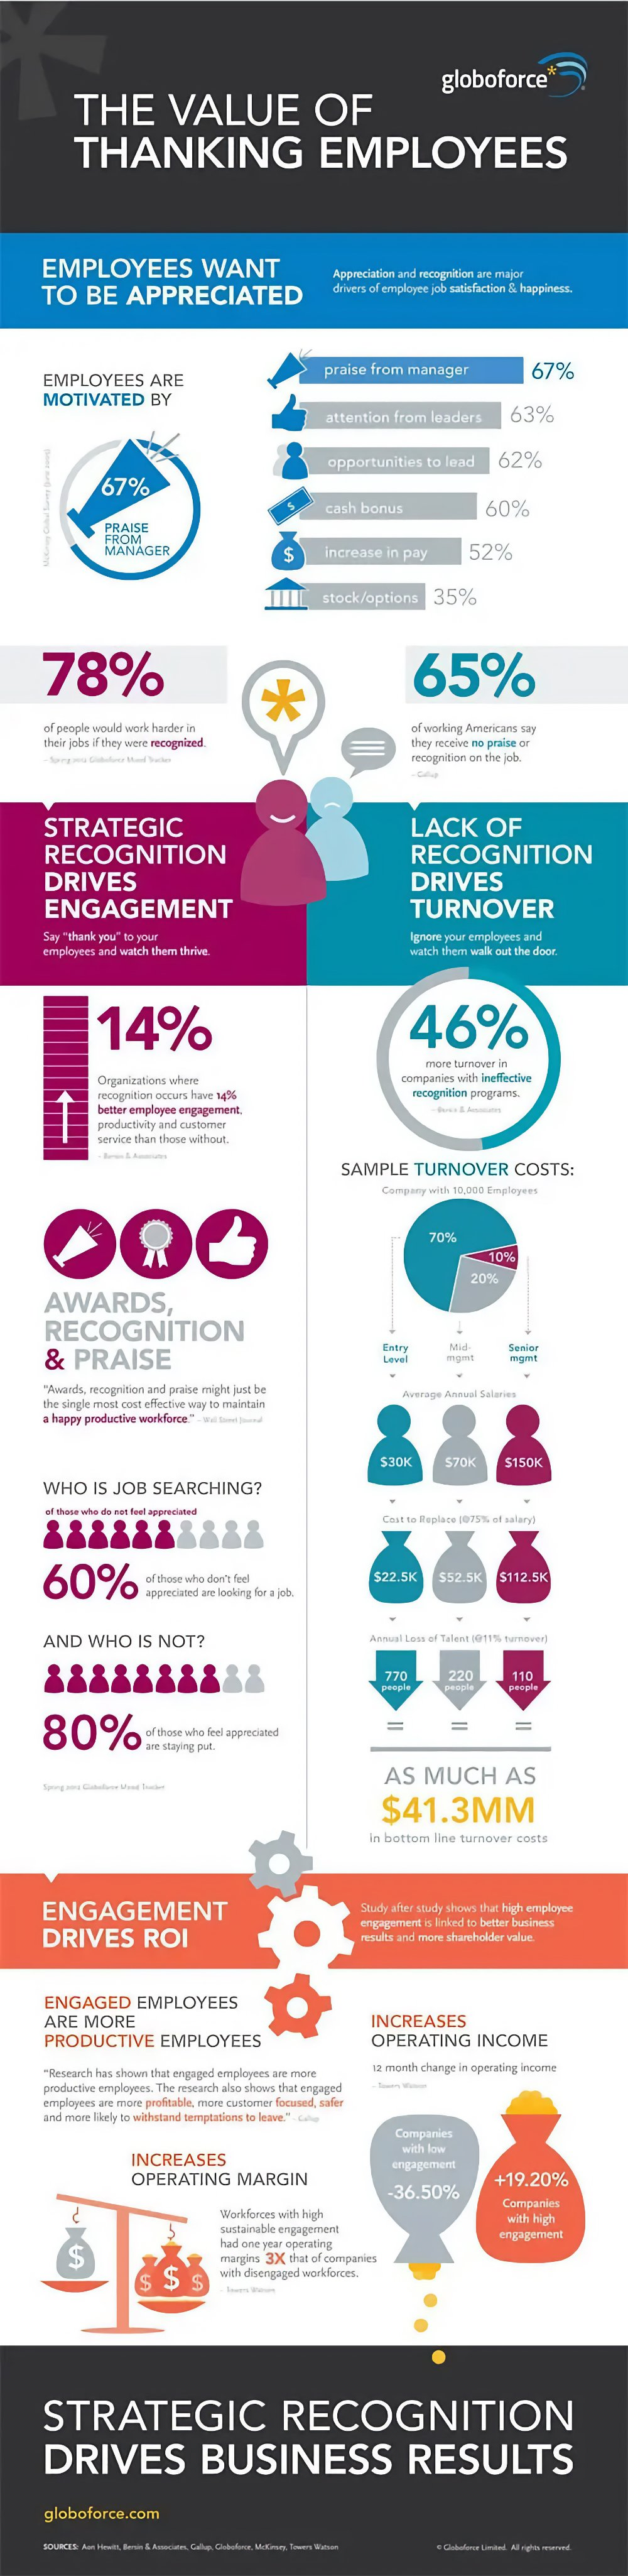 Appreciation for good work Infographic